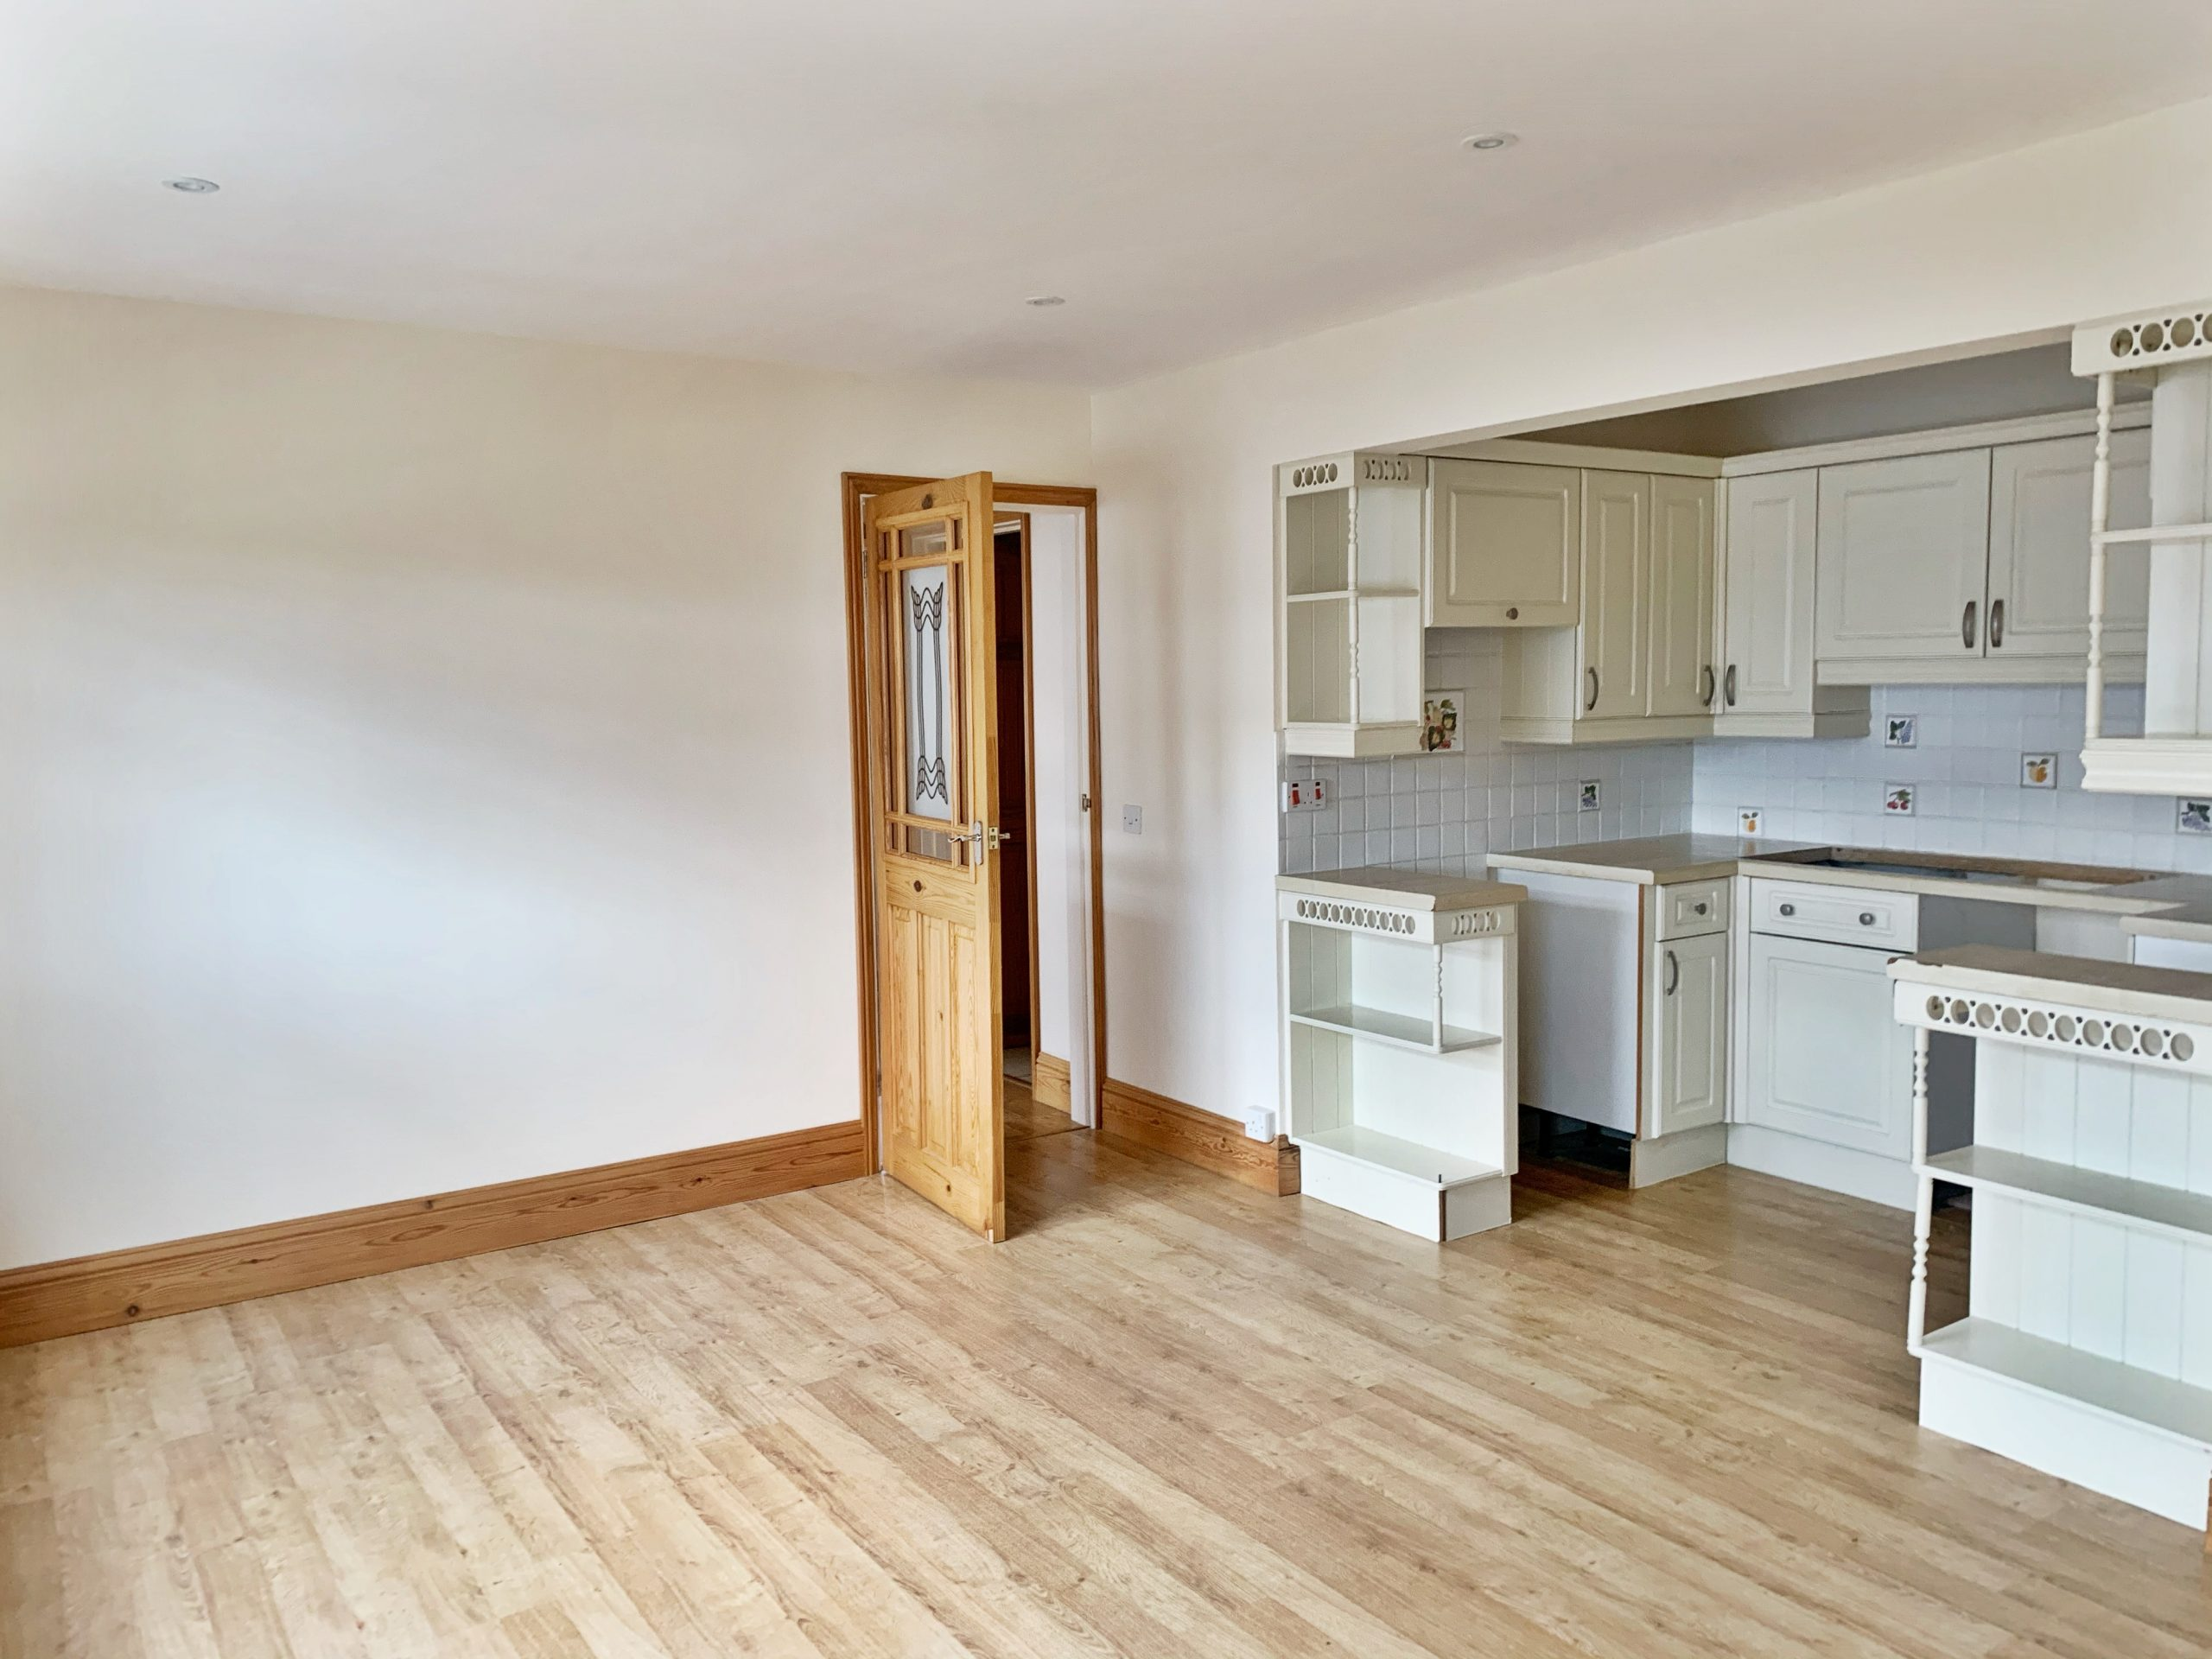 2 Bedroom Top Floor Apartment located in Wellington Court, with Parking, St Saviour